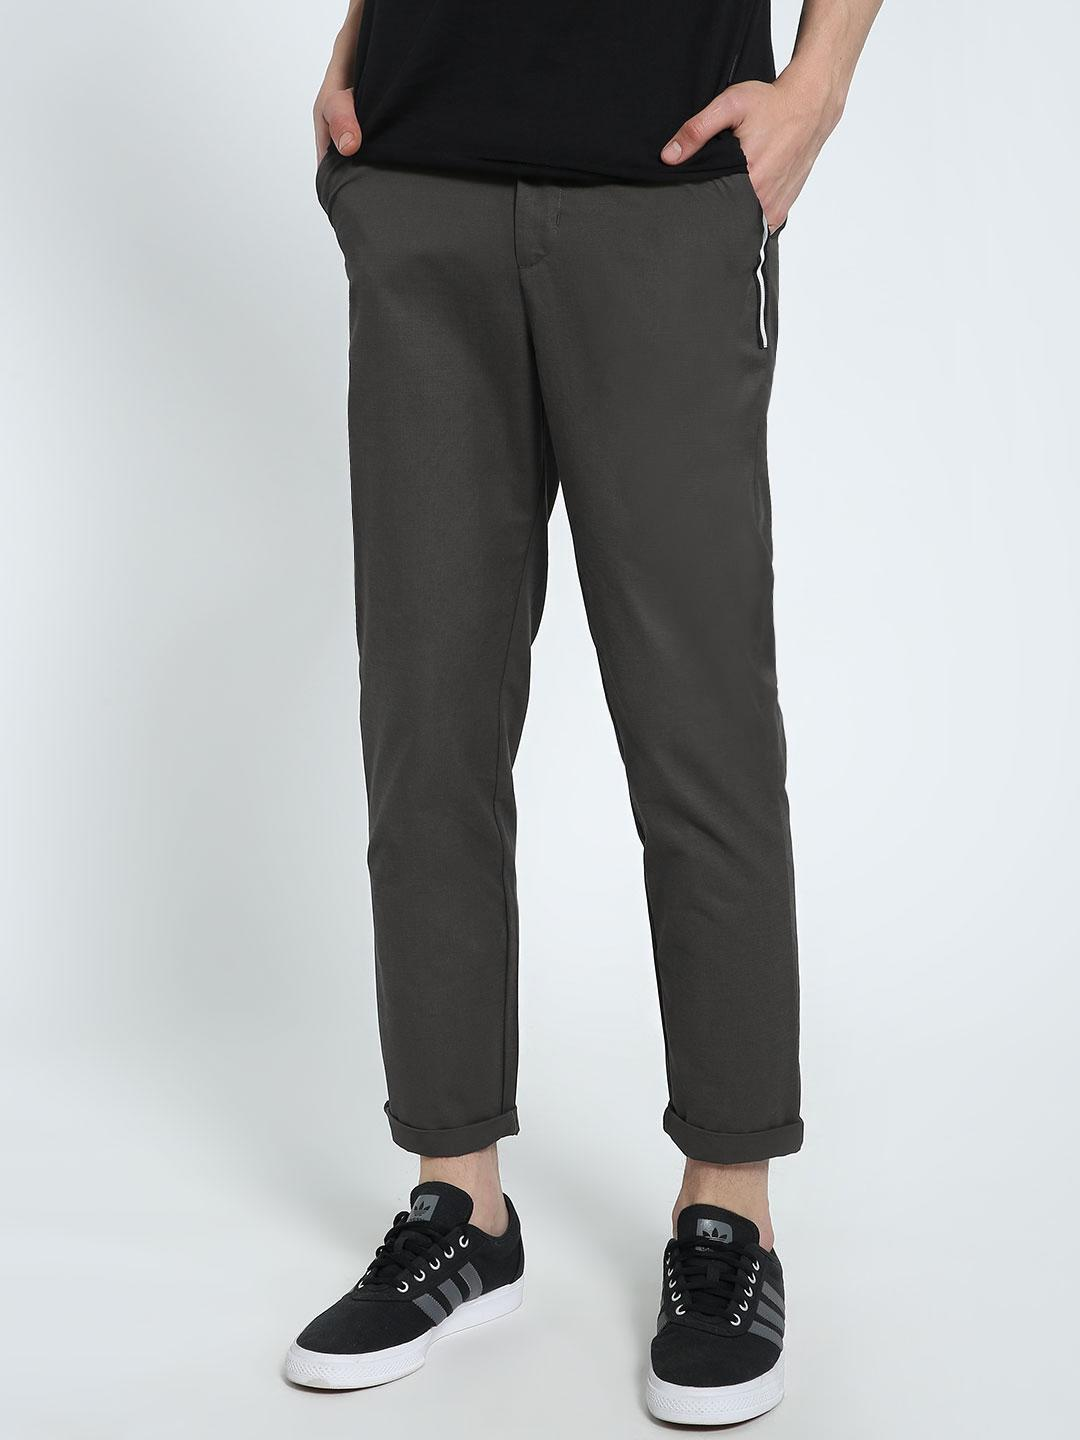 CHELSEA KING Dark Green Contrast Tape Detail Chinos 1